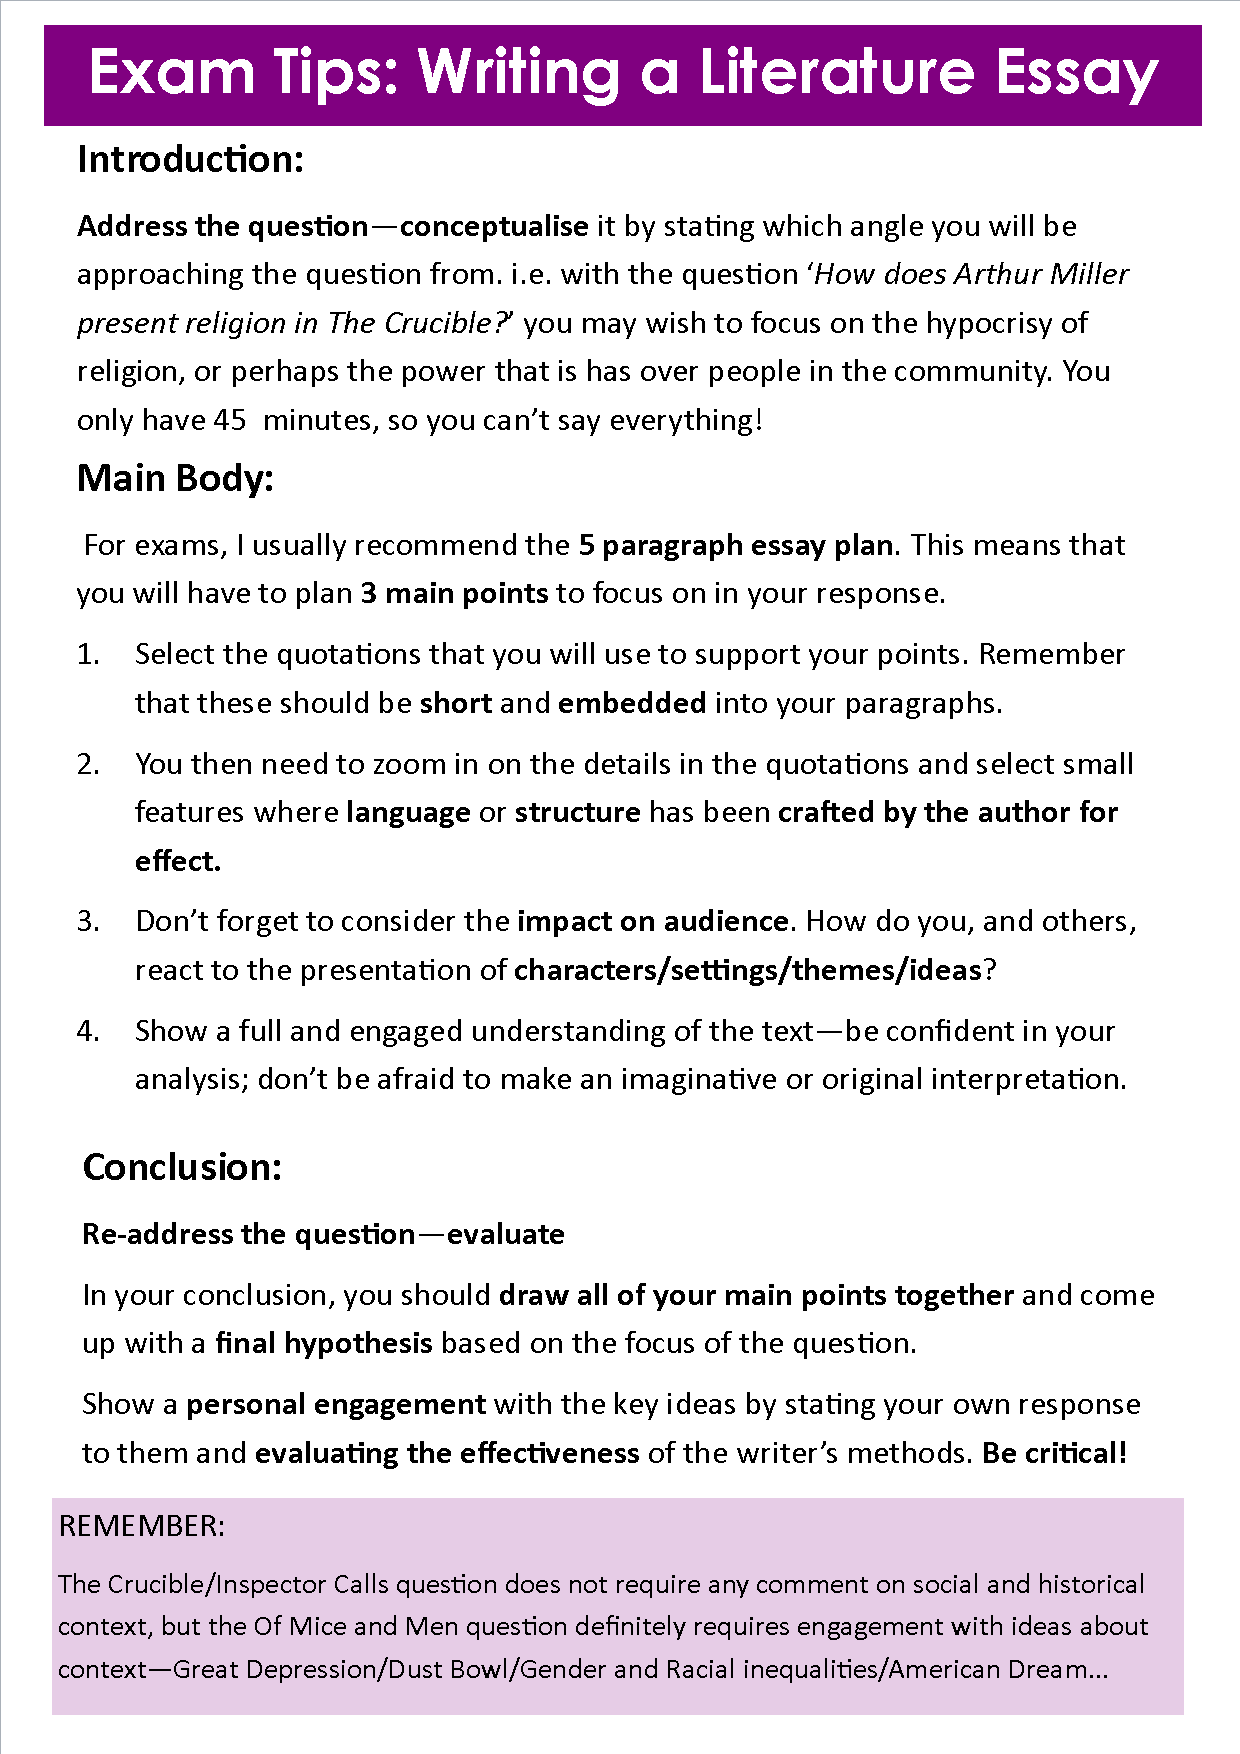 english literature and language a level essay structure European journal of english language, linguistics and literature vol essays lack properly defined structure to write good essay in english at ordinary level.